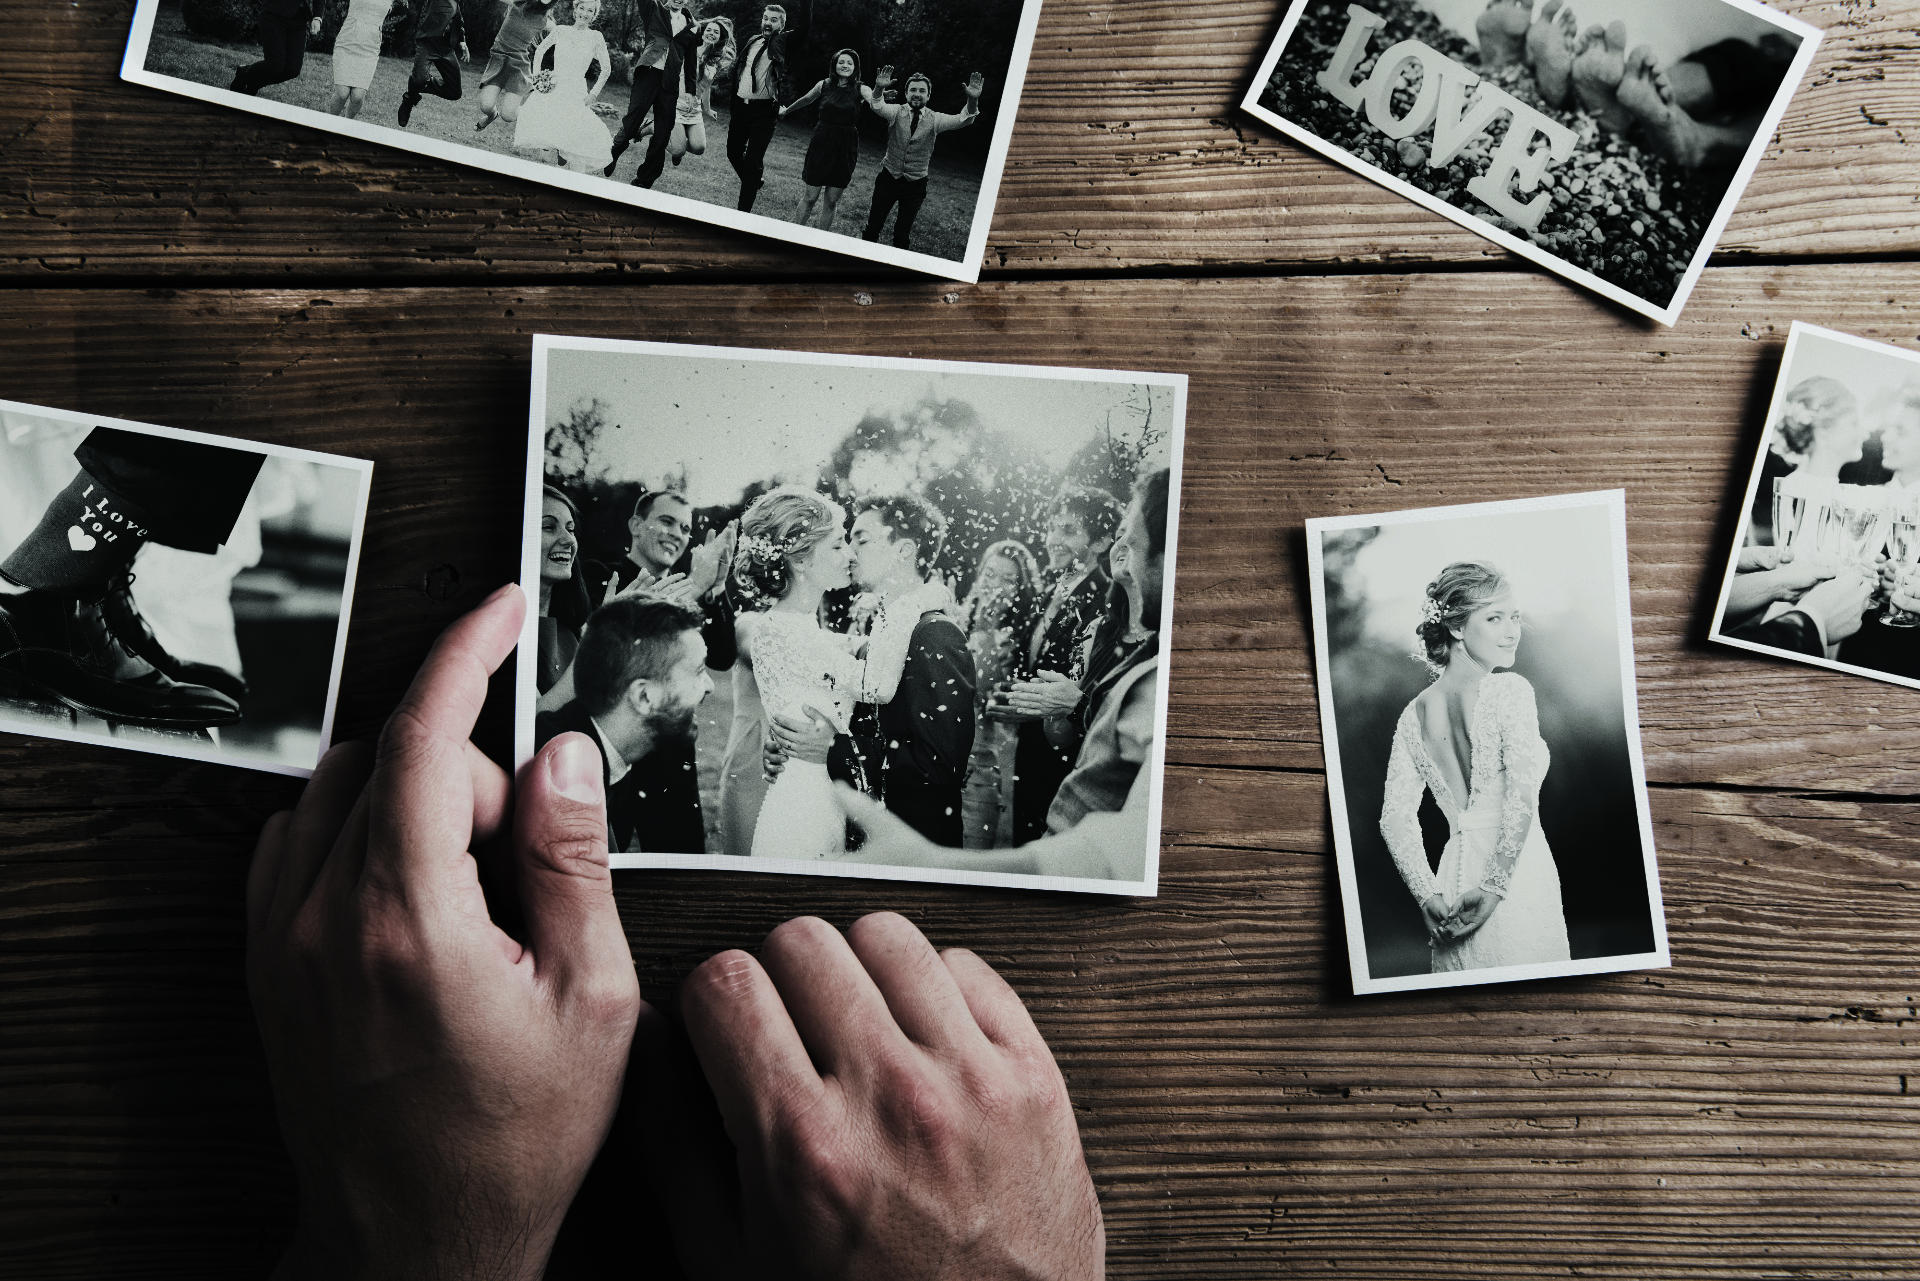 Wedding Photographer: How To Avoid Mistake When Hiring